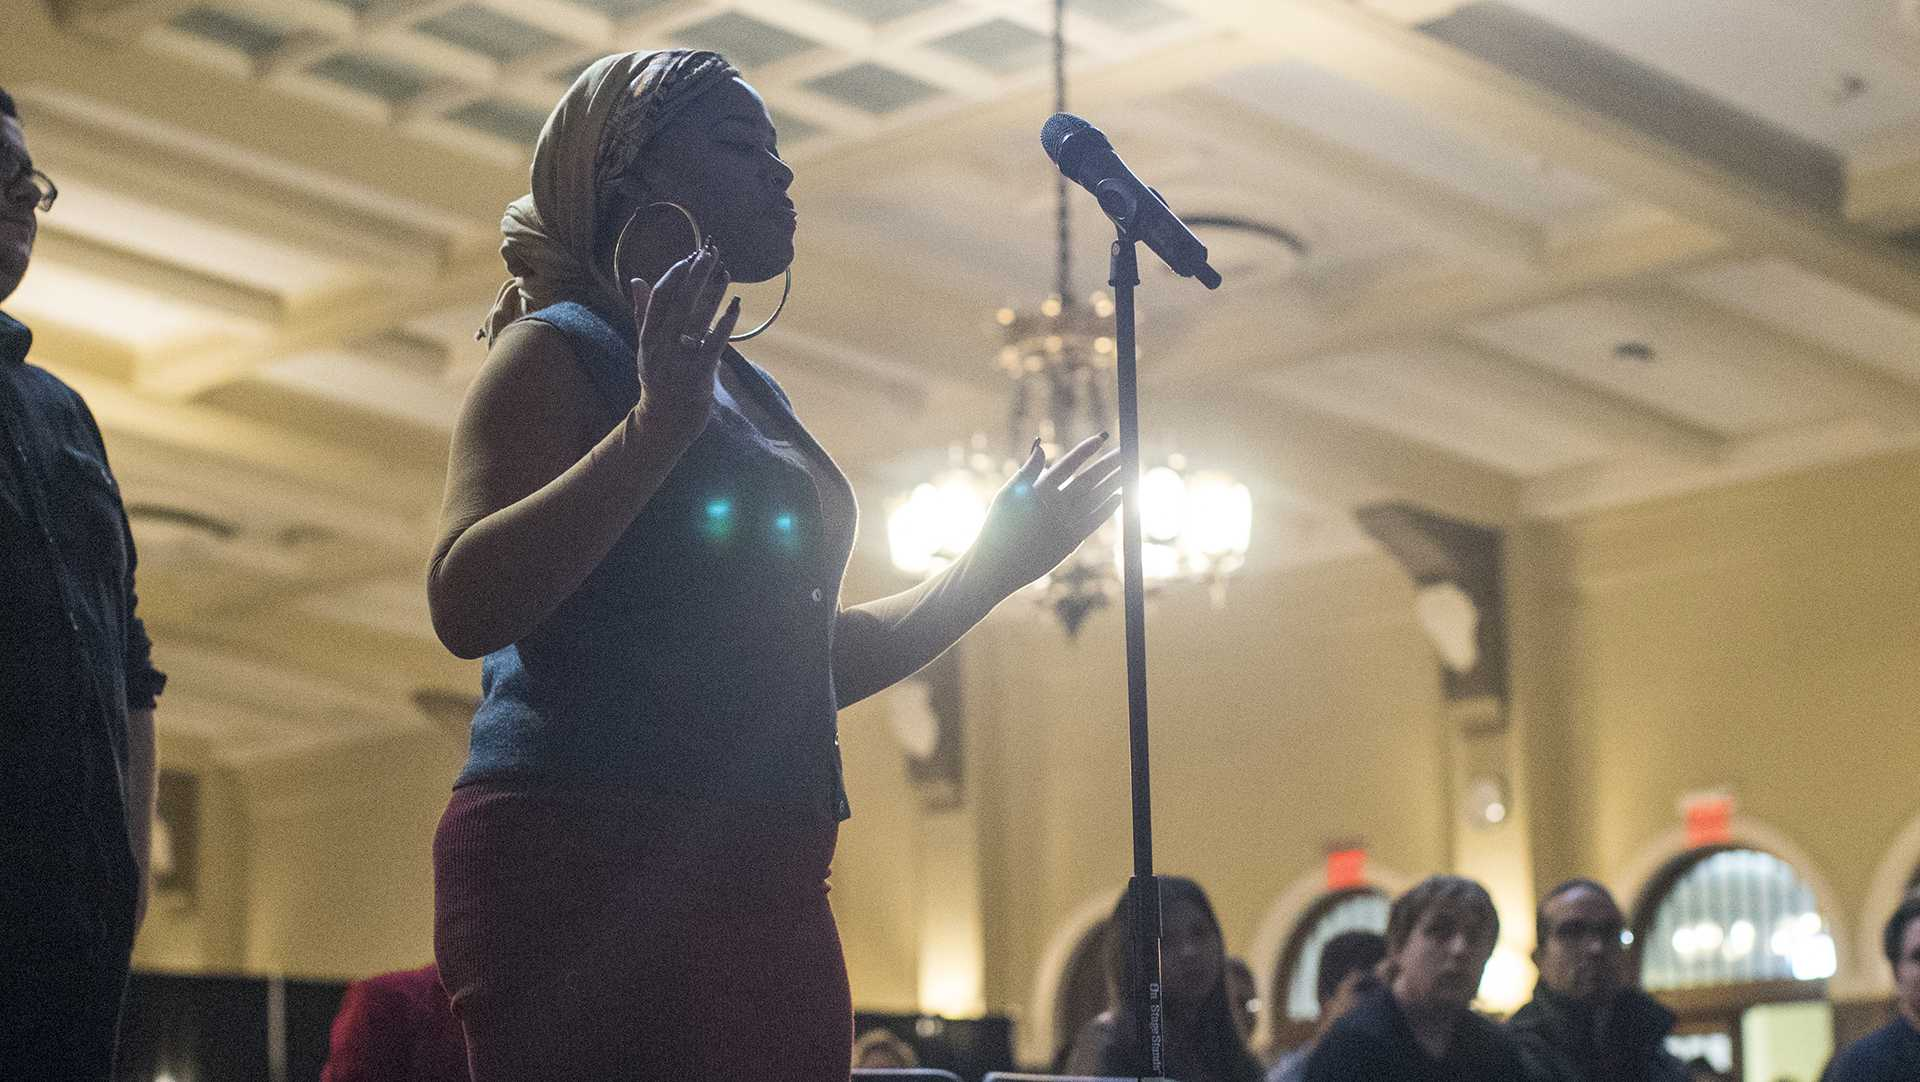 Student, Brooke Kimbrough, poses a question on racial inequality and First Amendment rights at the IMU on Tuesday, March 28, 2017. The University held a